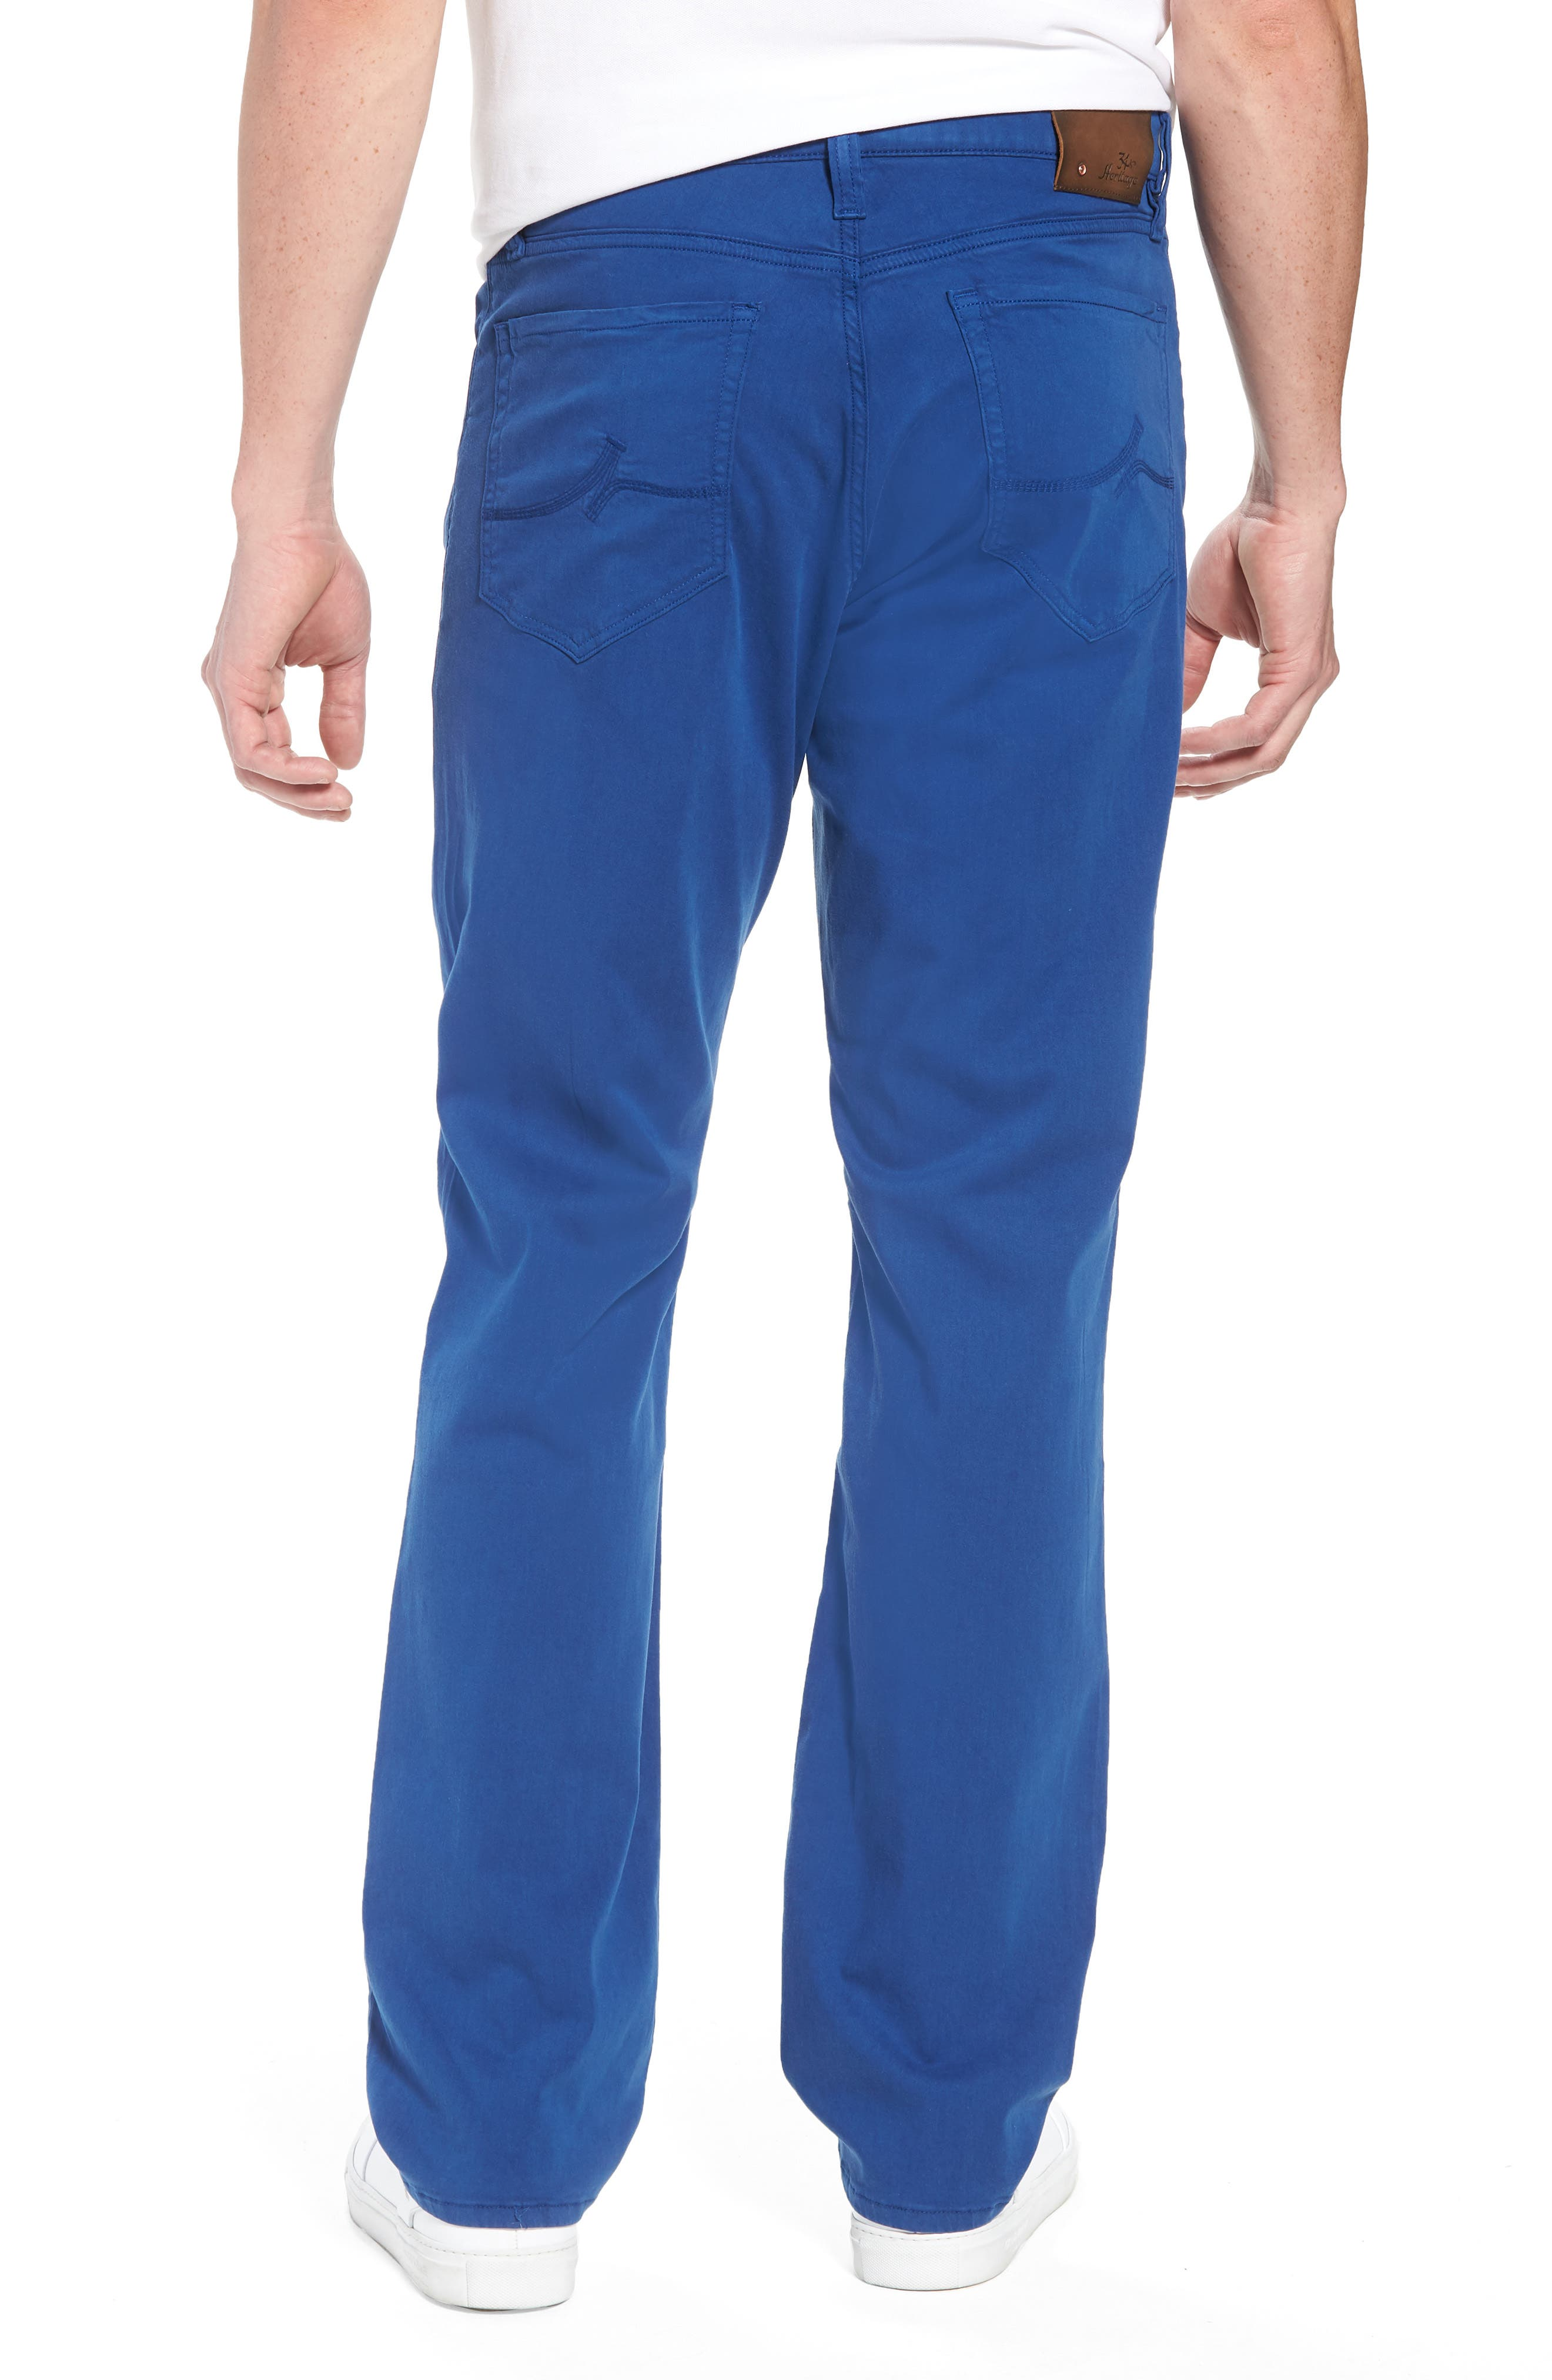 Charisma Relaxed Fit Jeans,                             Alternate thumbnail 2, color,                             ROYAL TWILL